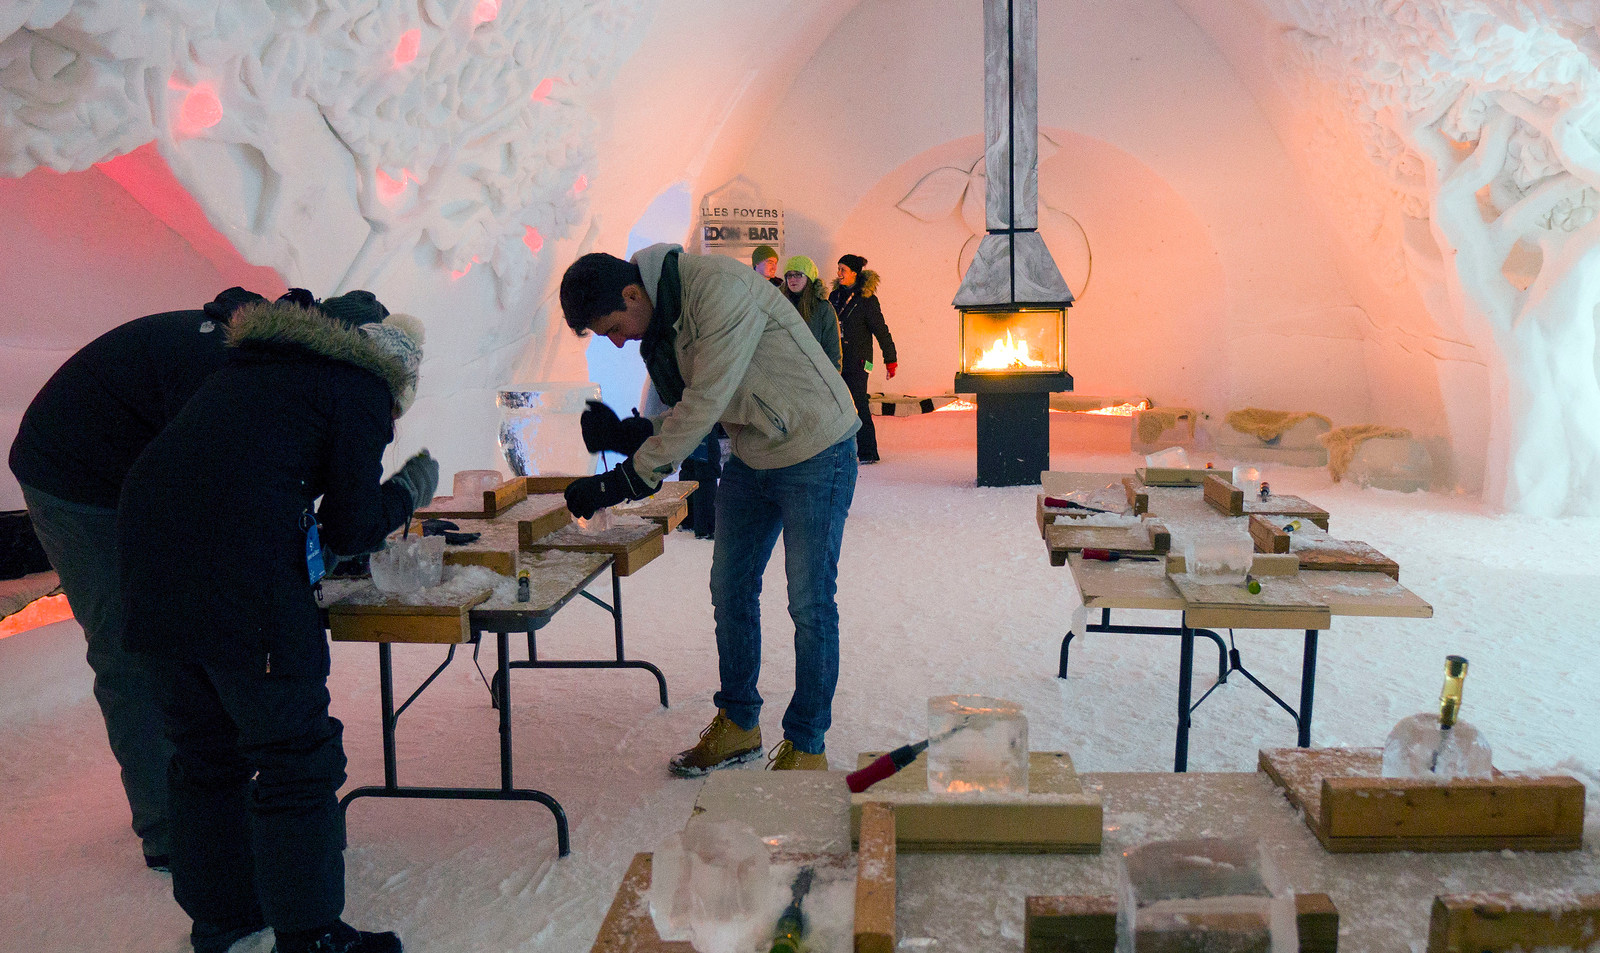 Ice Hotel Quebec: An Insider's Guide to Surviving the Night - Ice carving